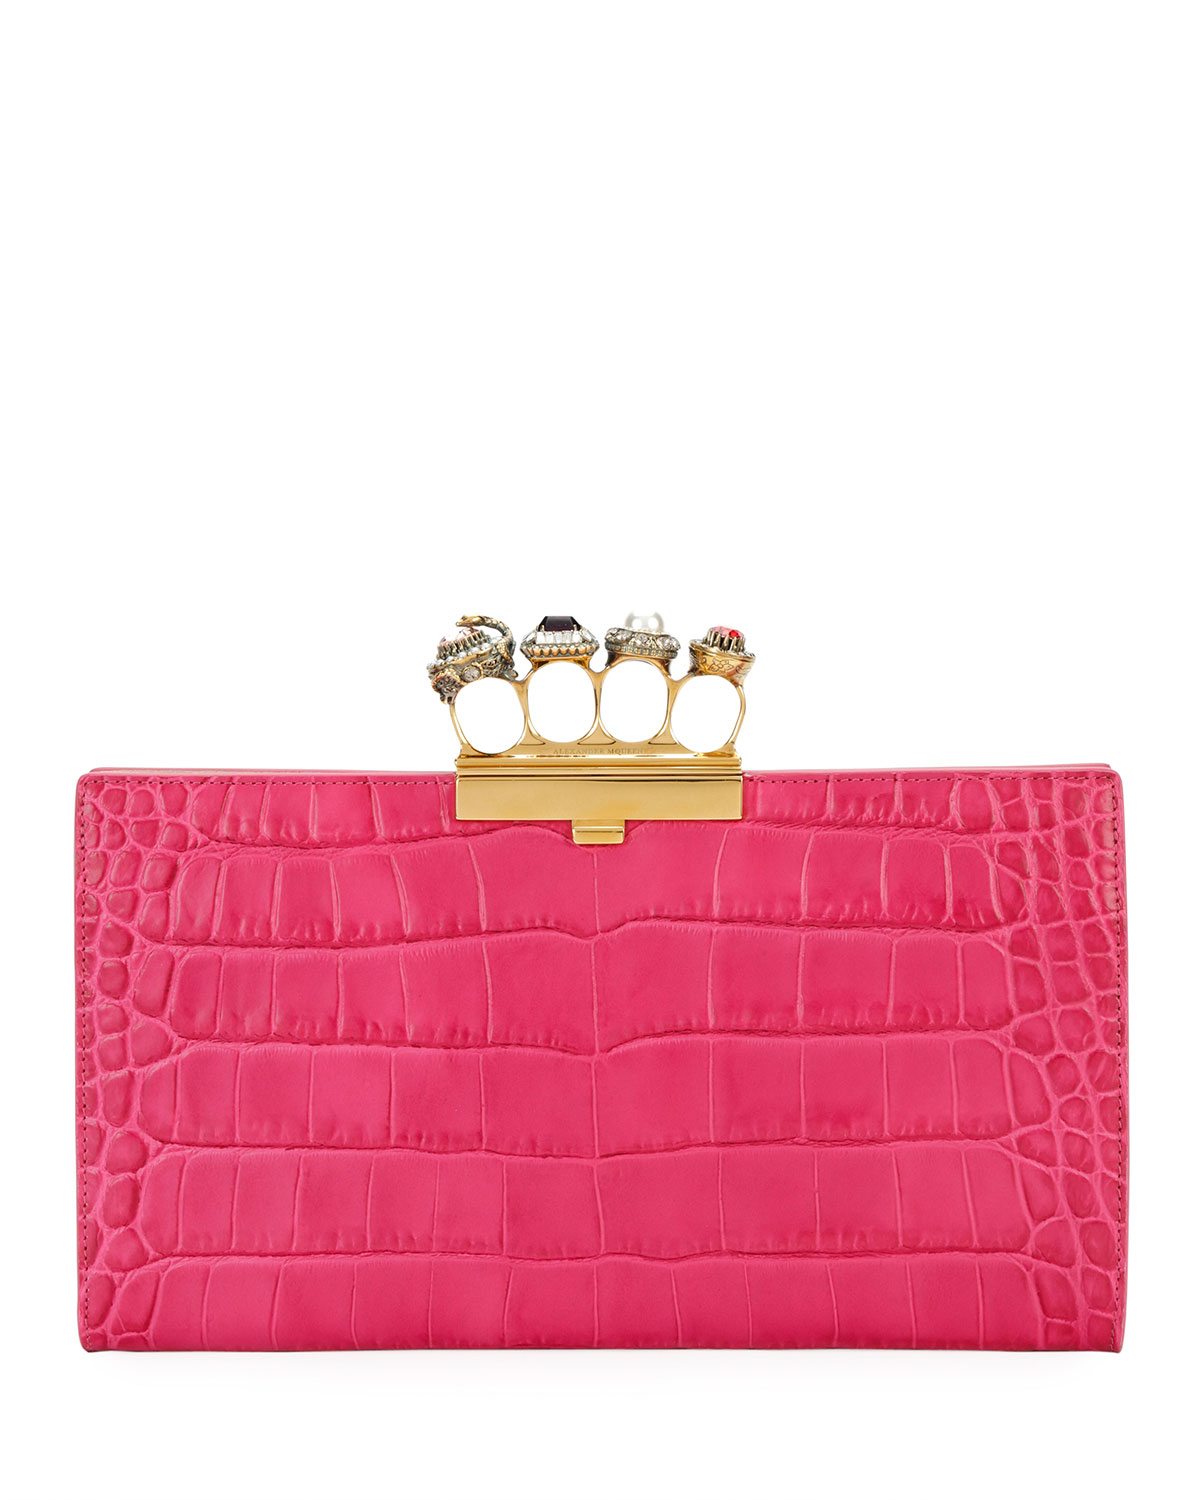 Jeweled Four Ring Crocodile Embossed Clutch Bag, Dark Pink by Alexander Mc Queen